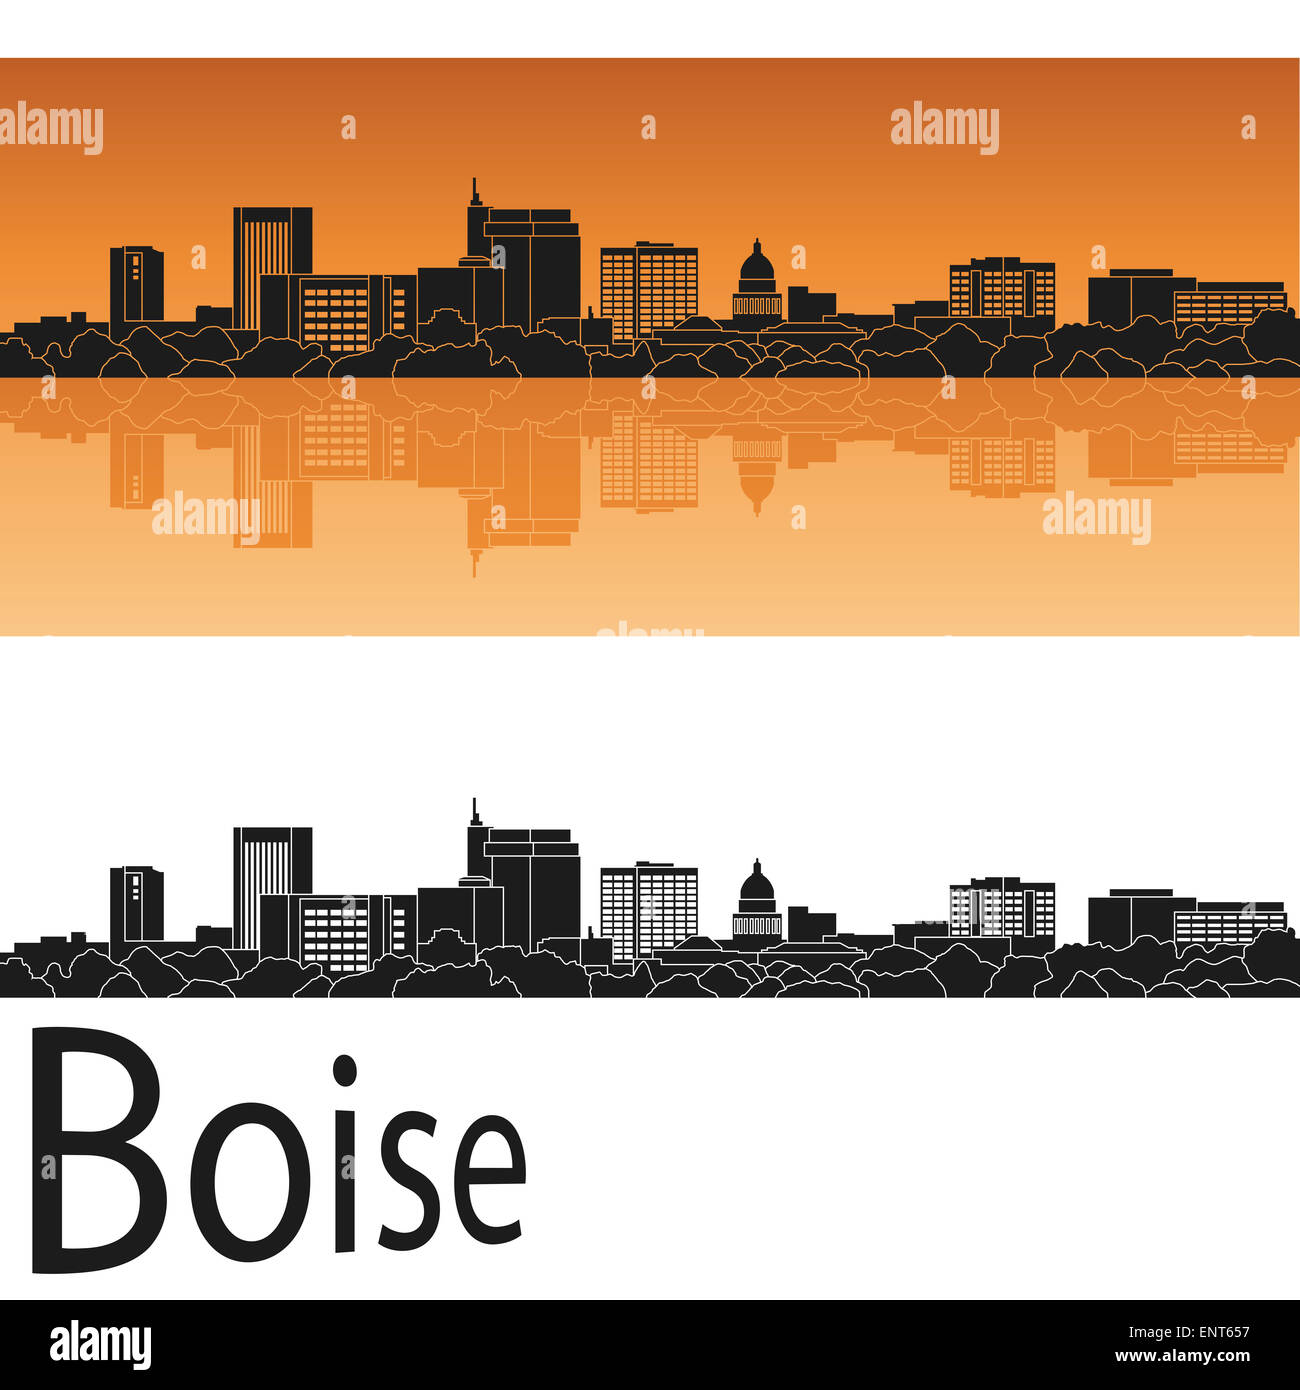 Boise skyline in orange - Stock Image